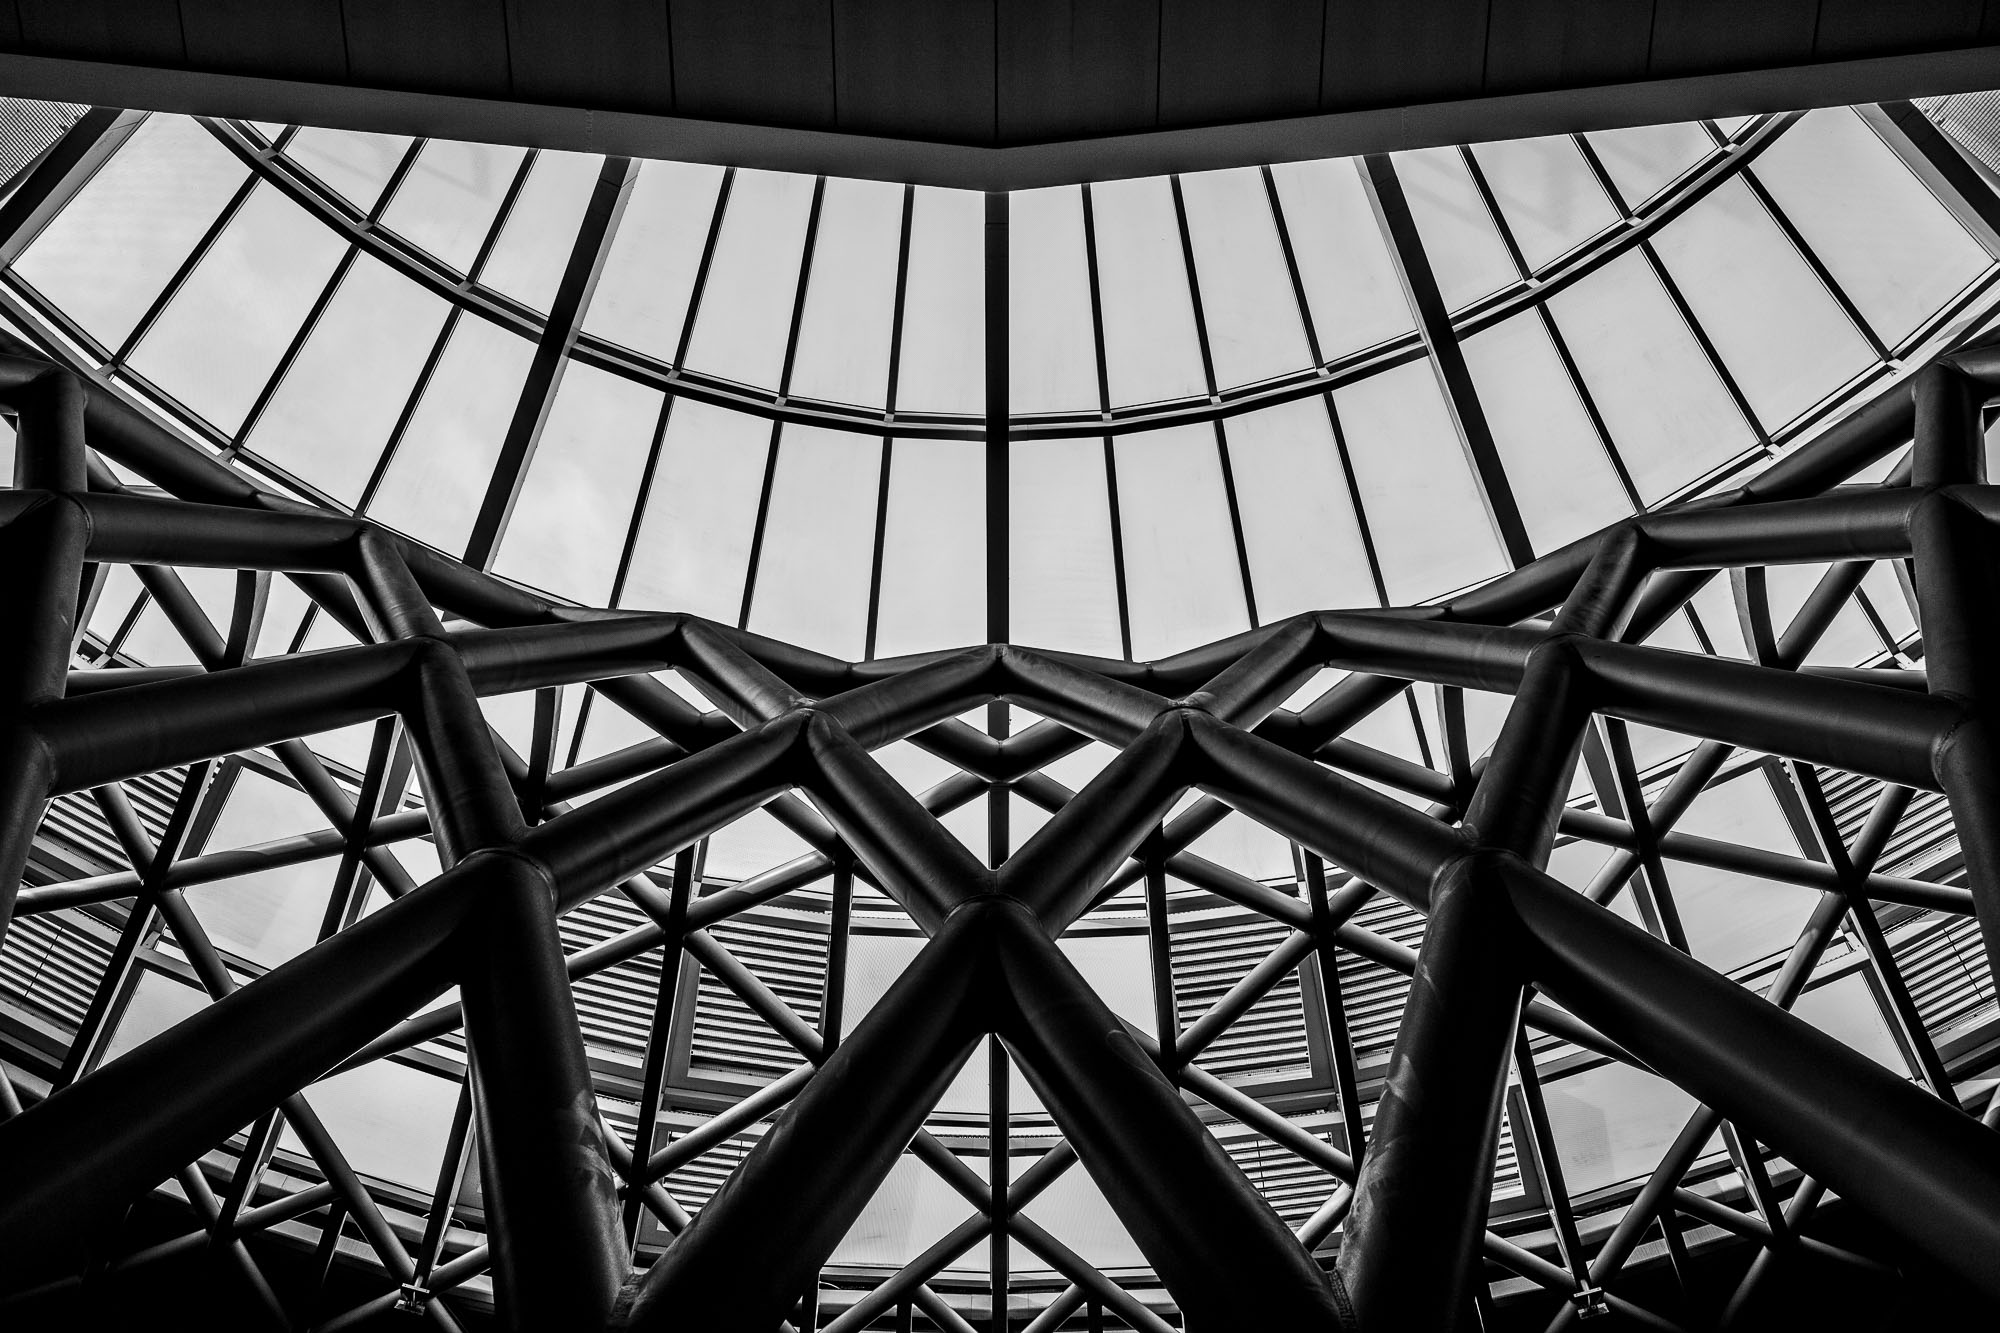 Ceiling at King's Cross Station